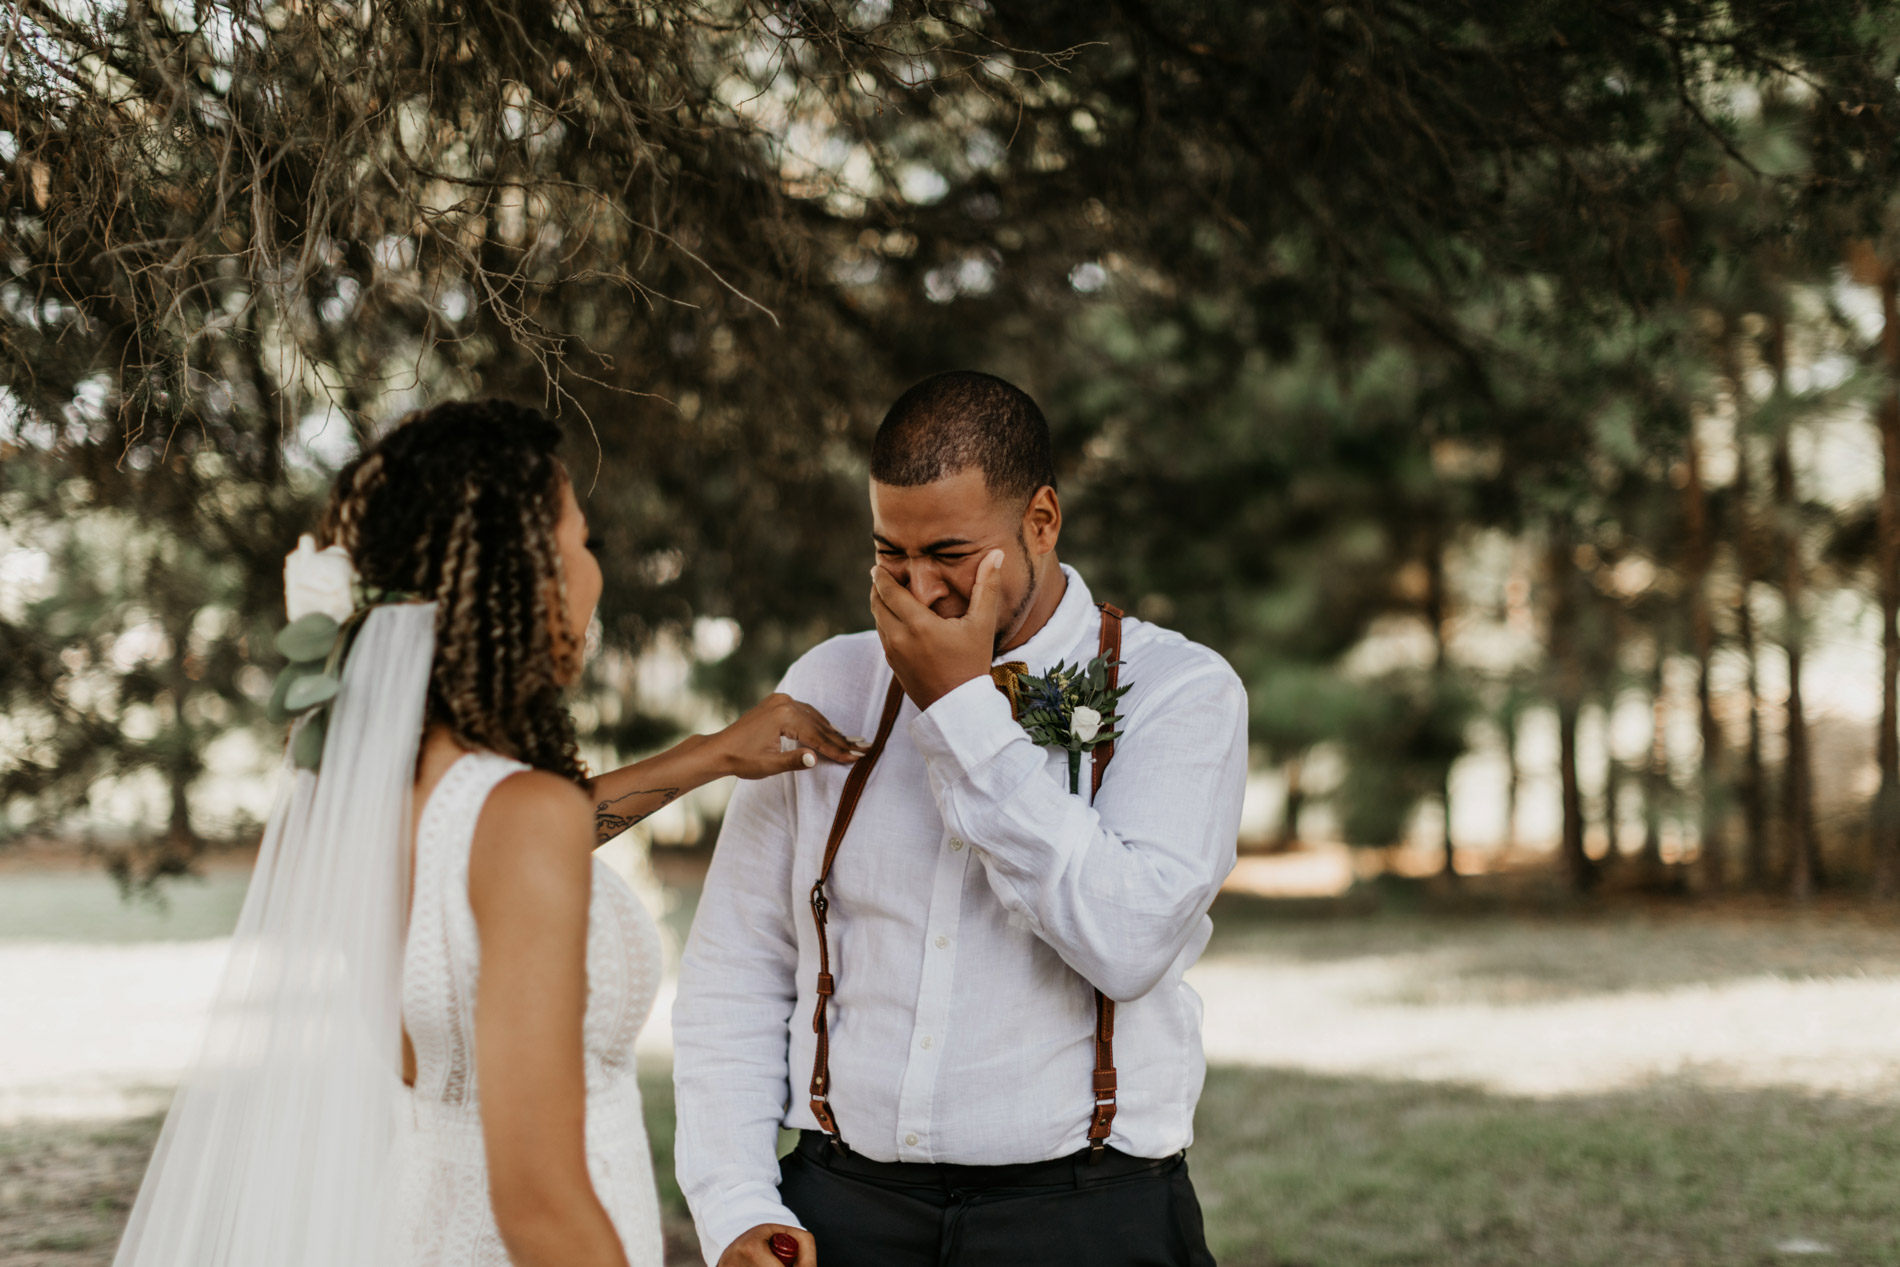 Brother seeing sister for first time on her wedding day - Emotional first look